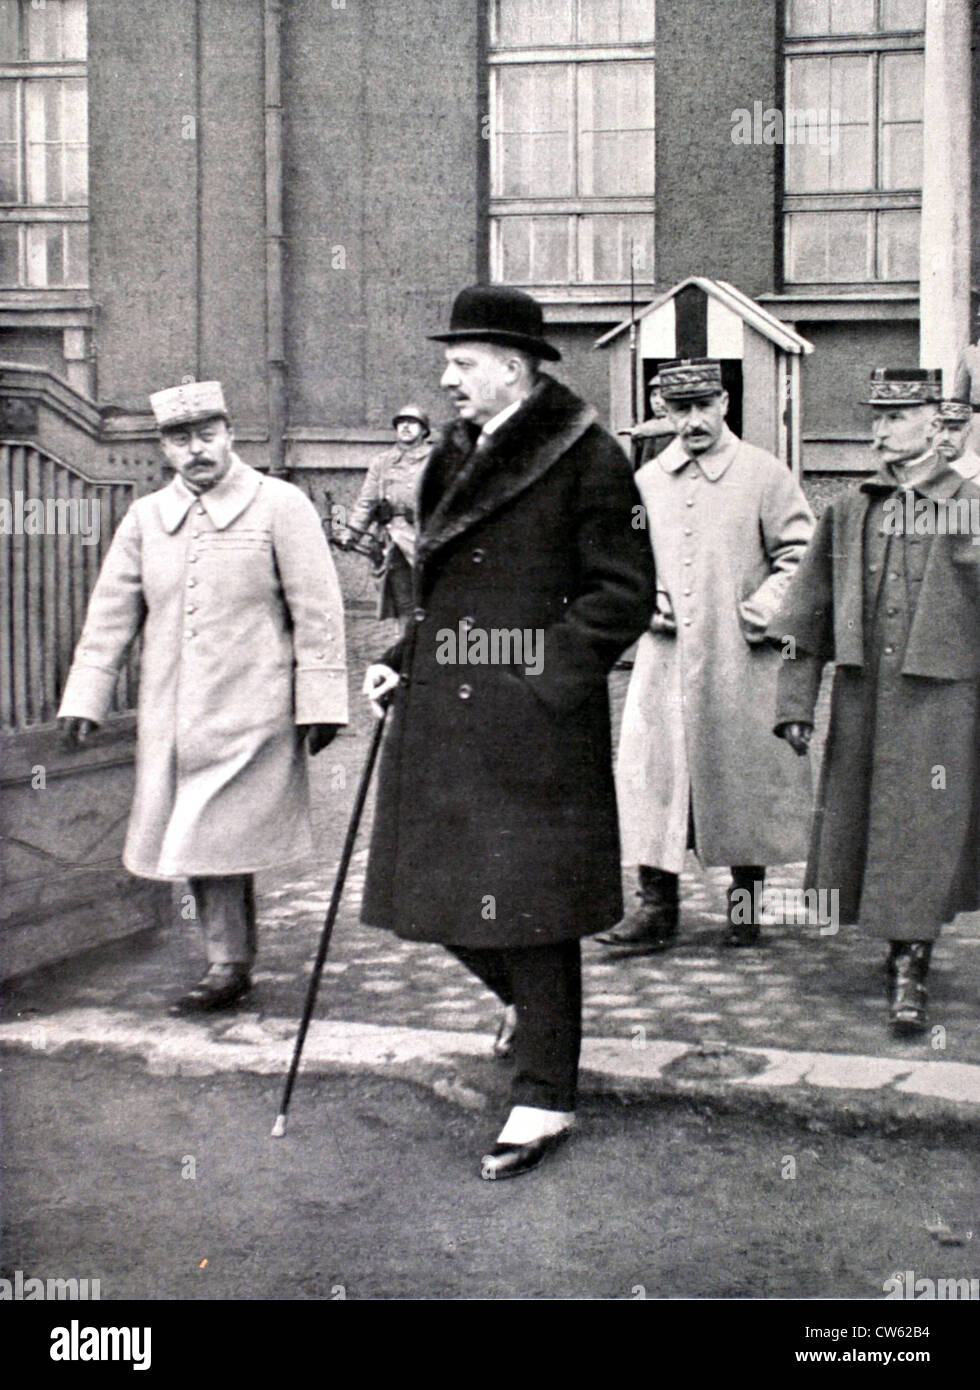 Mr. Maginot, French minister of War, on a tour of inspection in the Ruhr region, 1923 - Stock Image